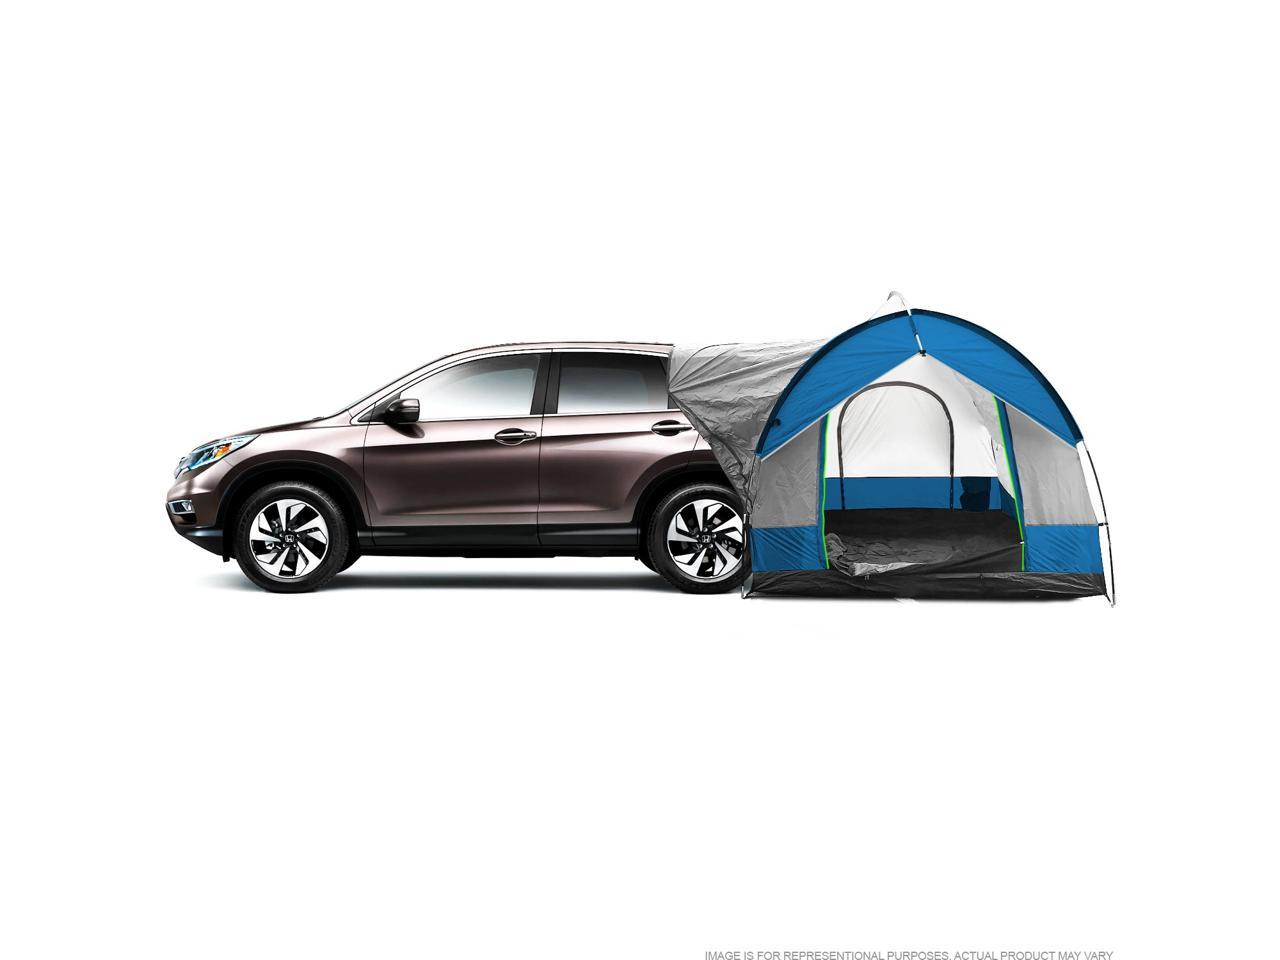 Universal Suv Camping Tent Up To 8 Person Sleeping Capacity Includes Rainfly And Storage Bag 8 W X 8 L X 7 2 H Gray And Blue Newegg Com